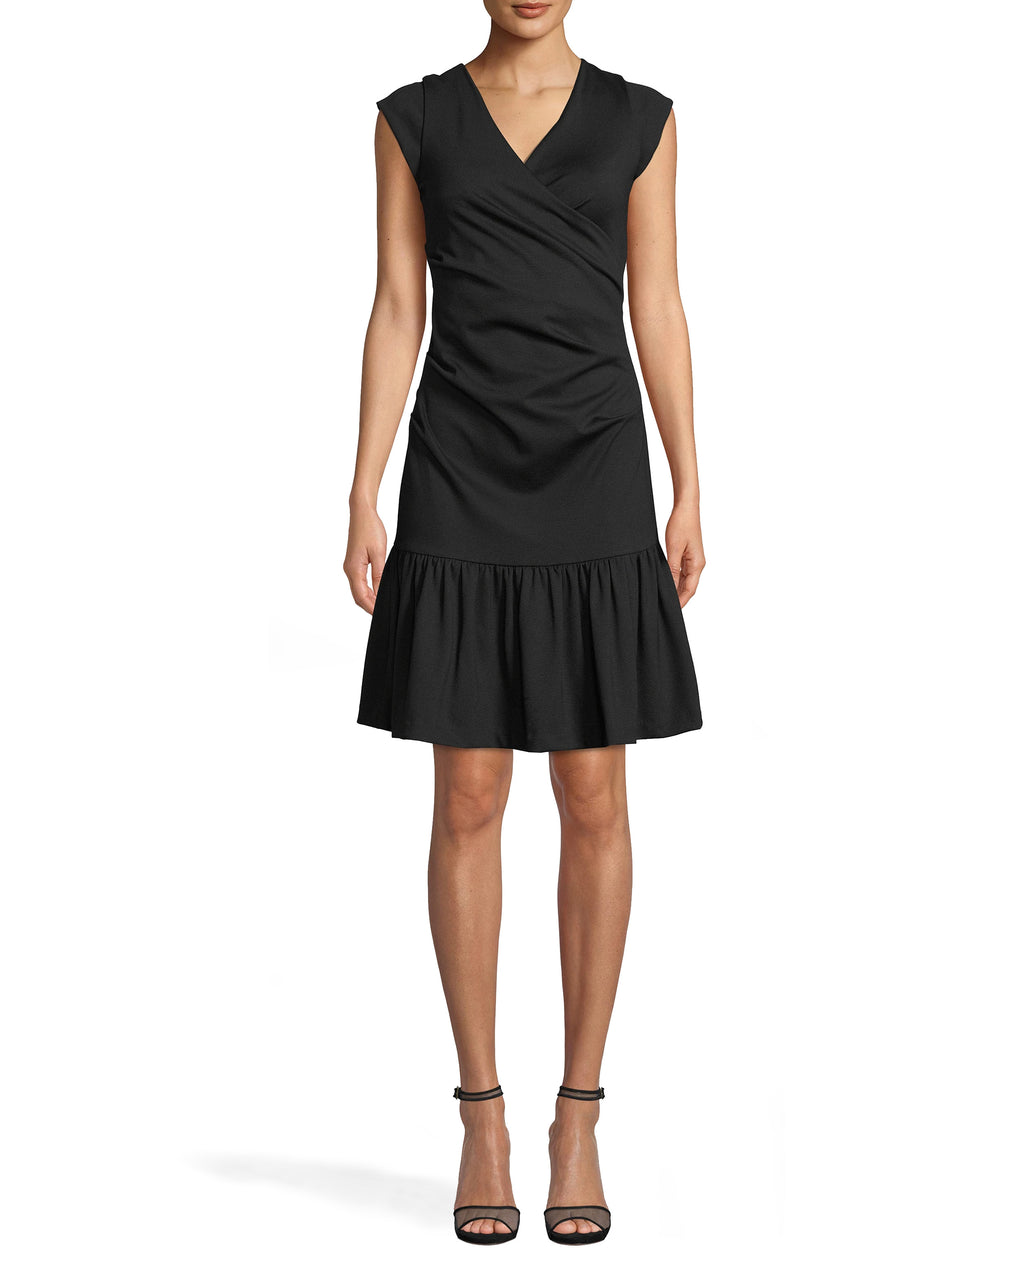 BH20137 - PONTE RUFFLED BECKETT DRESS - dresses - short - THIS CAREFULLY TAILORED DRESS FEATURES THICK STRAPS AND FLATTERING RUCHING DOWN THE BODY. THE HEMLINE HITS JUST ABOVE THE KNEE AND FEATURES RUFFLE DETAIL FOR ADDED TEXTURE. CONCEALED ZIPPER DOWN THE BACK.